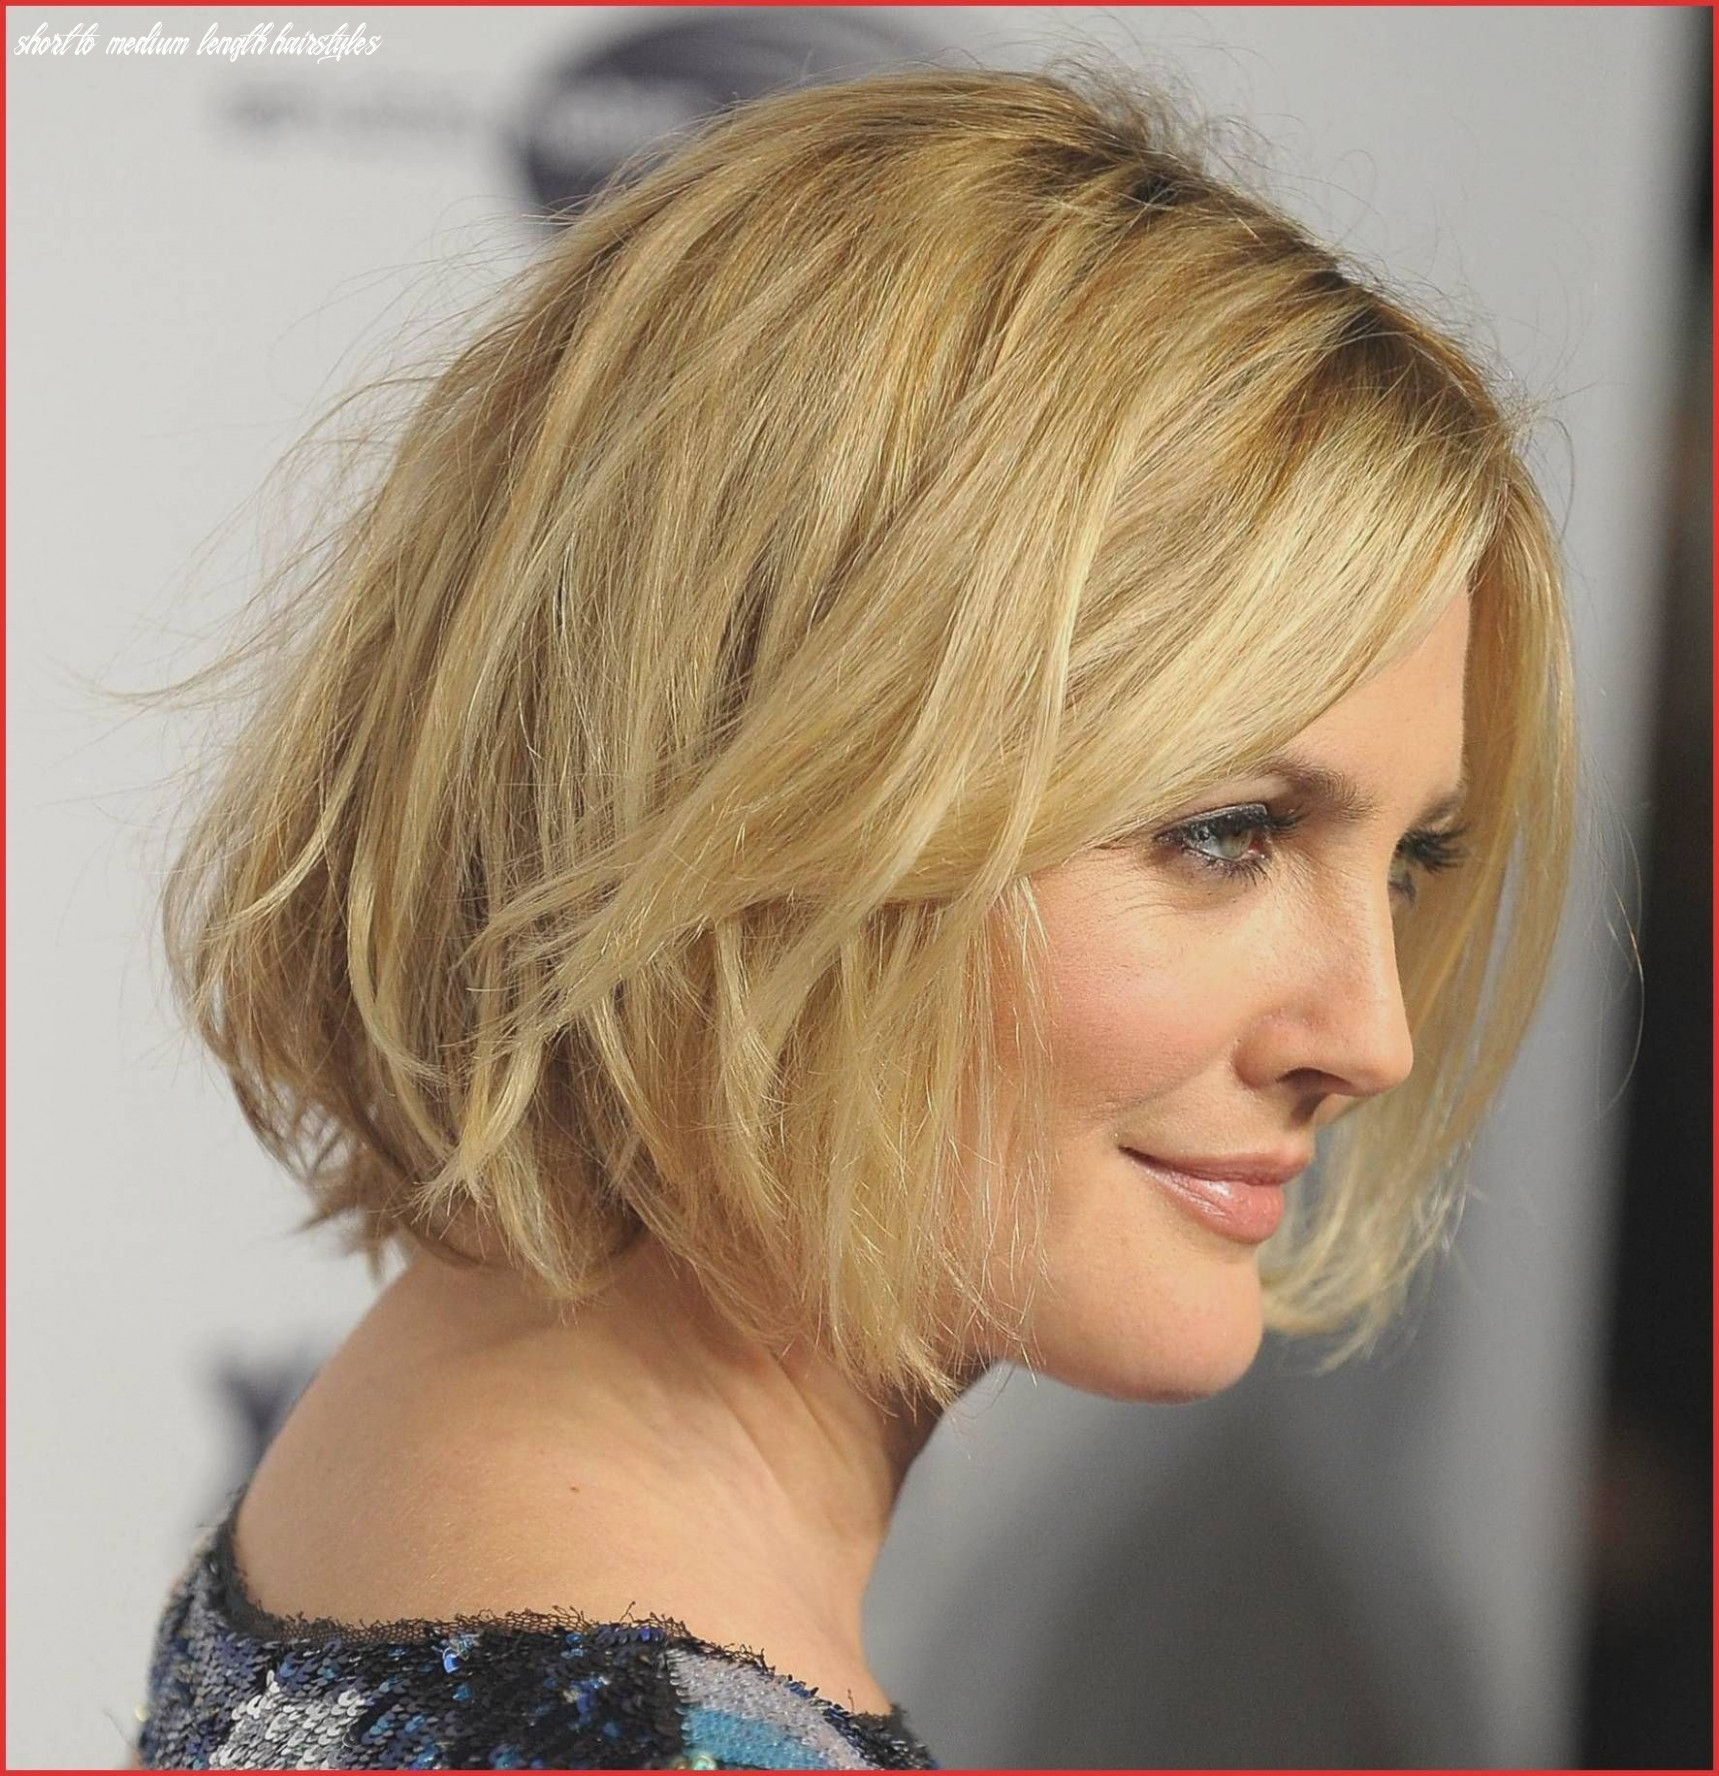 Medium length hair ideas awesome elegant hairstyles for short hair